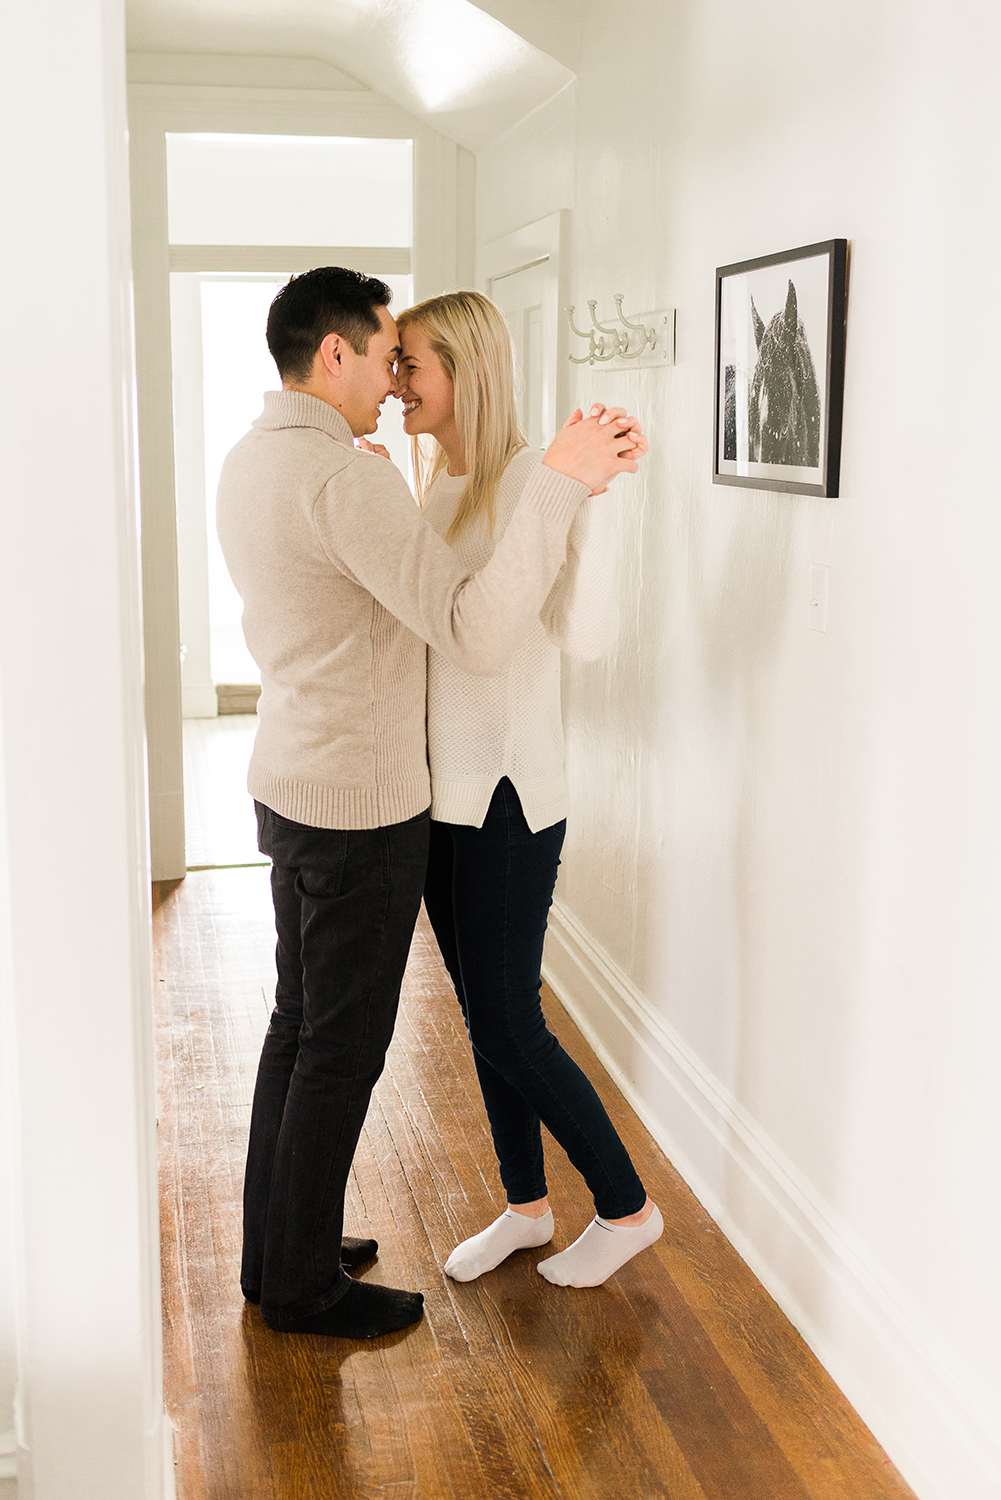 in-home-engagement-session-denver-engagement-photographer_63.jpg